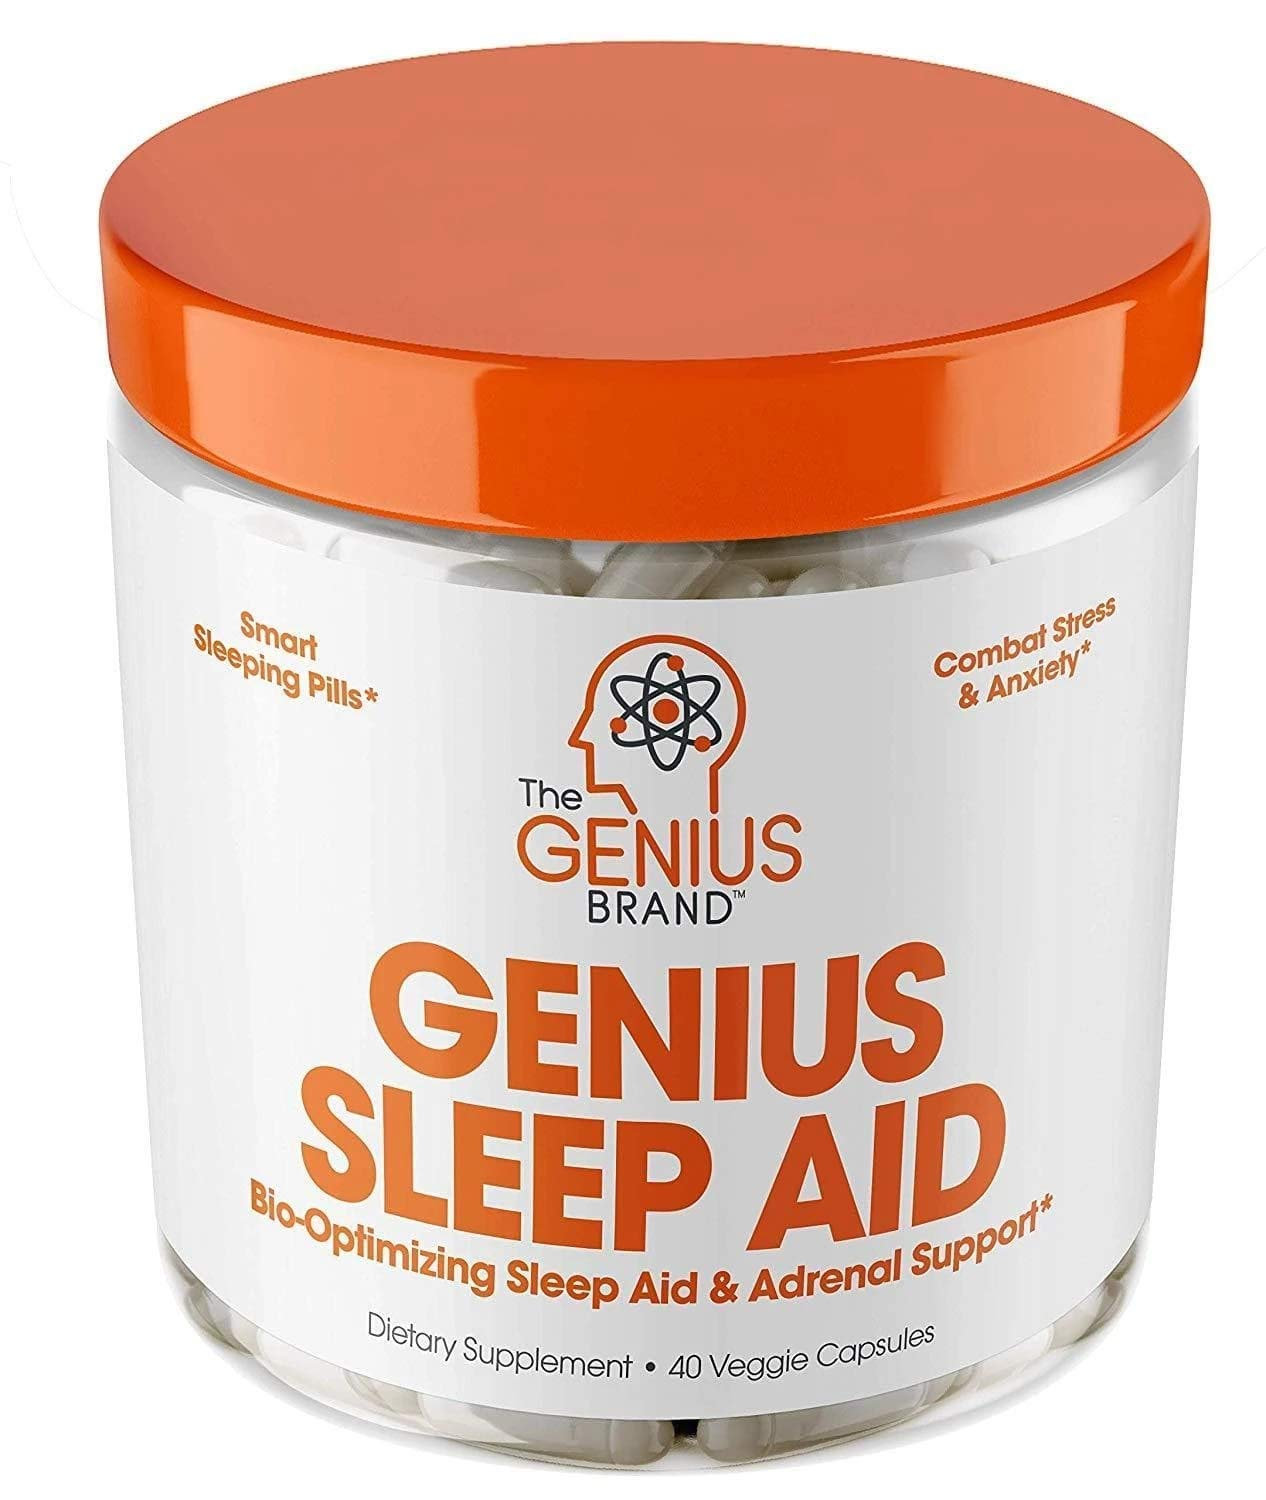 Genius Sleep AID - Smart Sleeping Pills & Adrenal Fatigue Supplement, Natural Stress, Anxiety & Insomnia Relief - Relaxation Enhancer and Mood Support w/Inositol, L-Theanine & Glycine - 40 Capsules by The Genius Brand